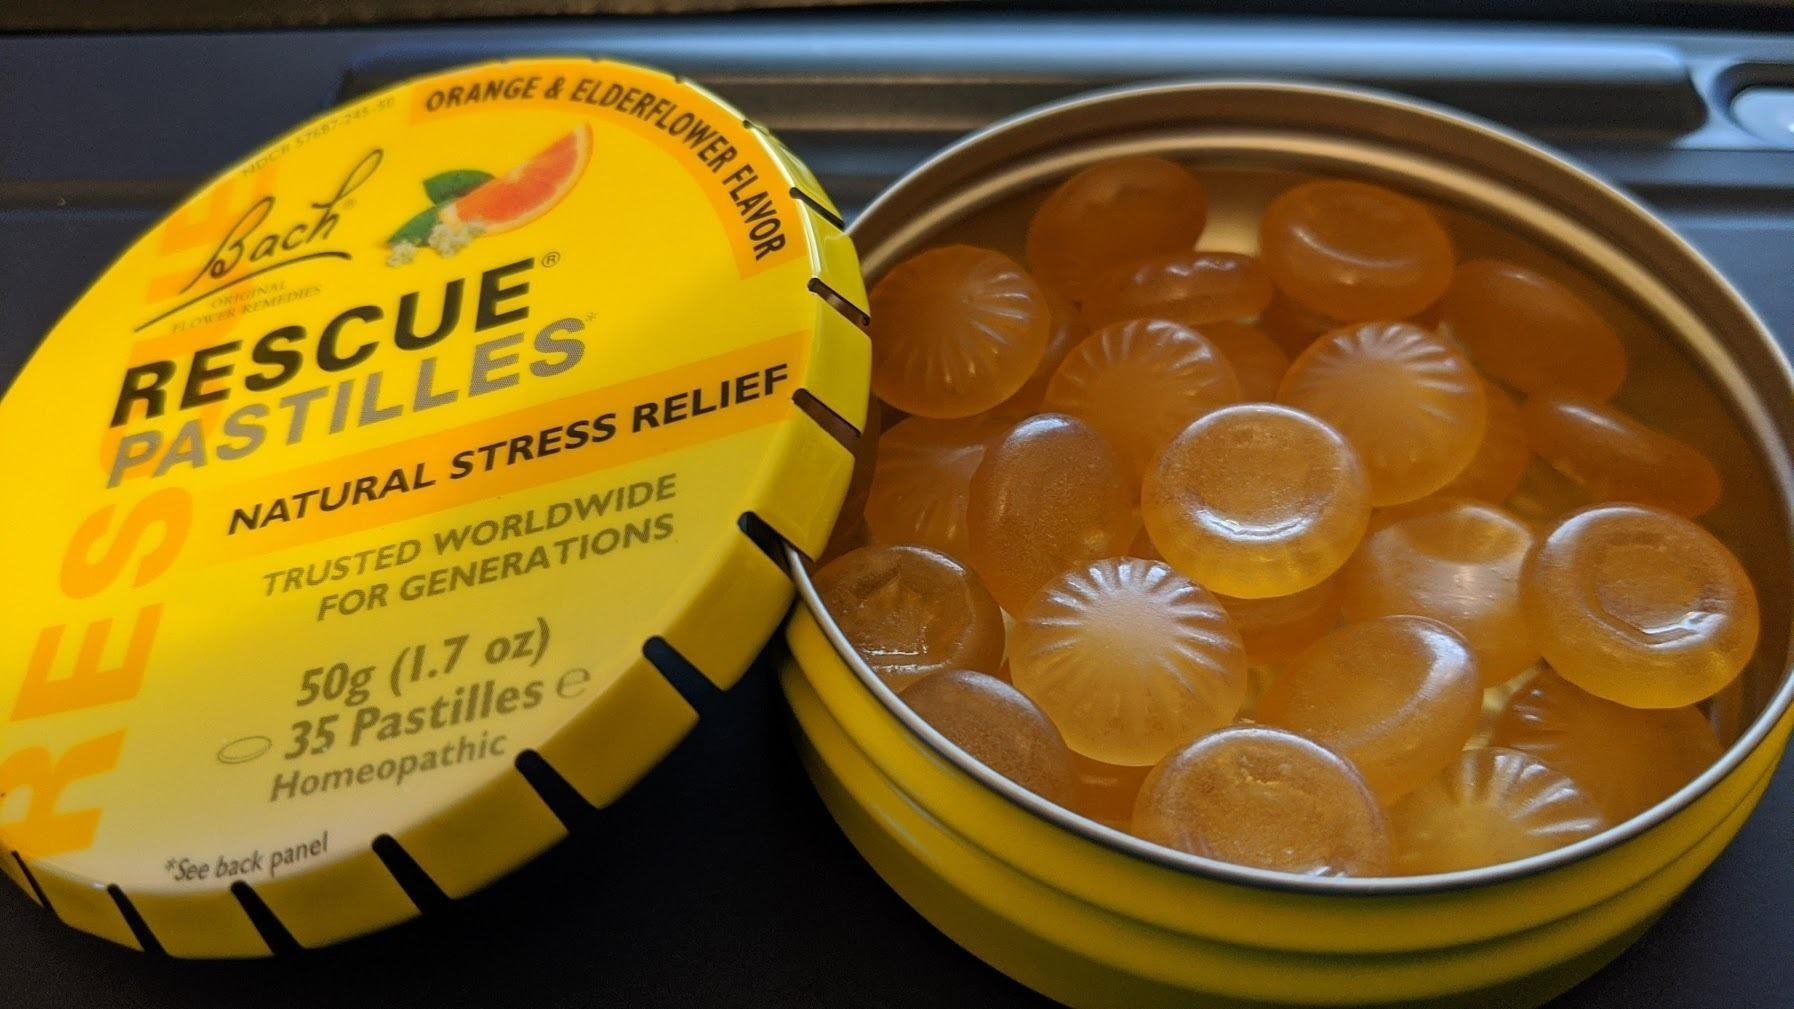 reviewer photo of the tin of rescue pastilles